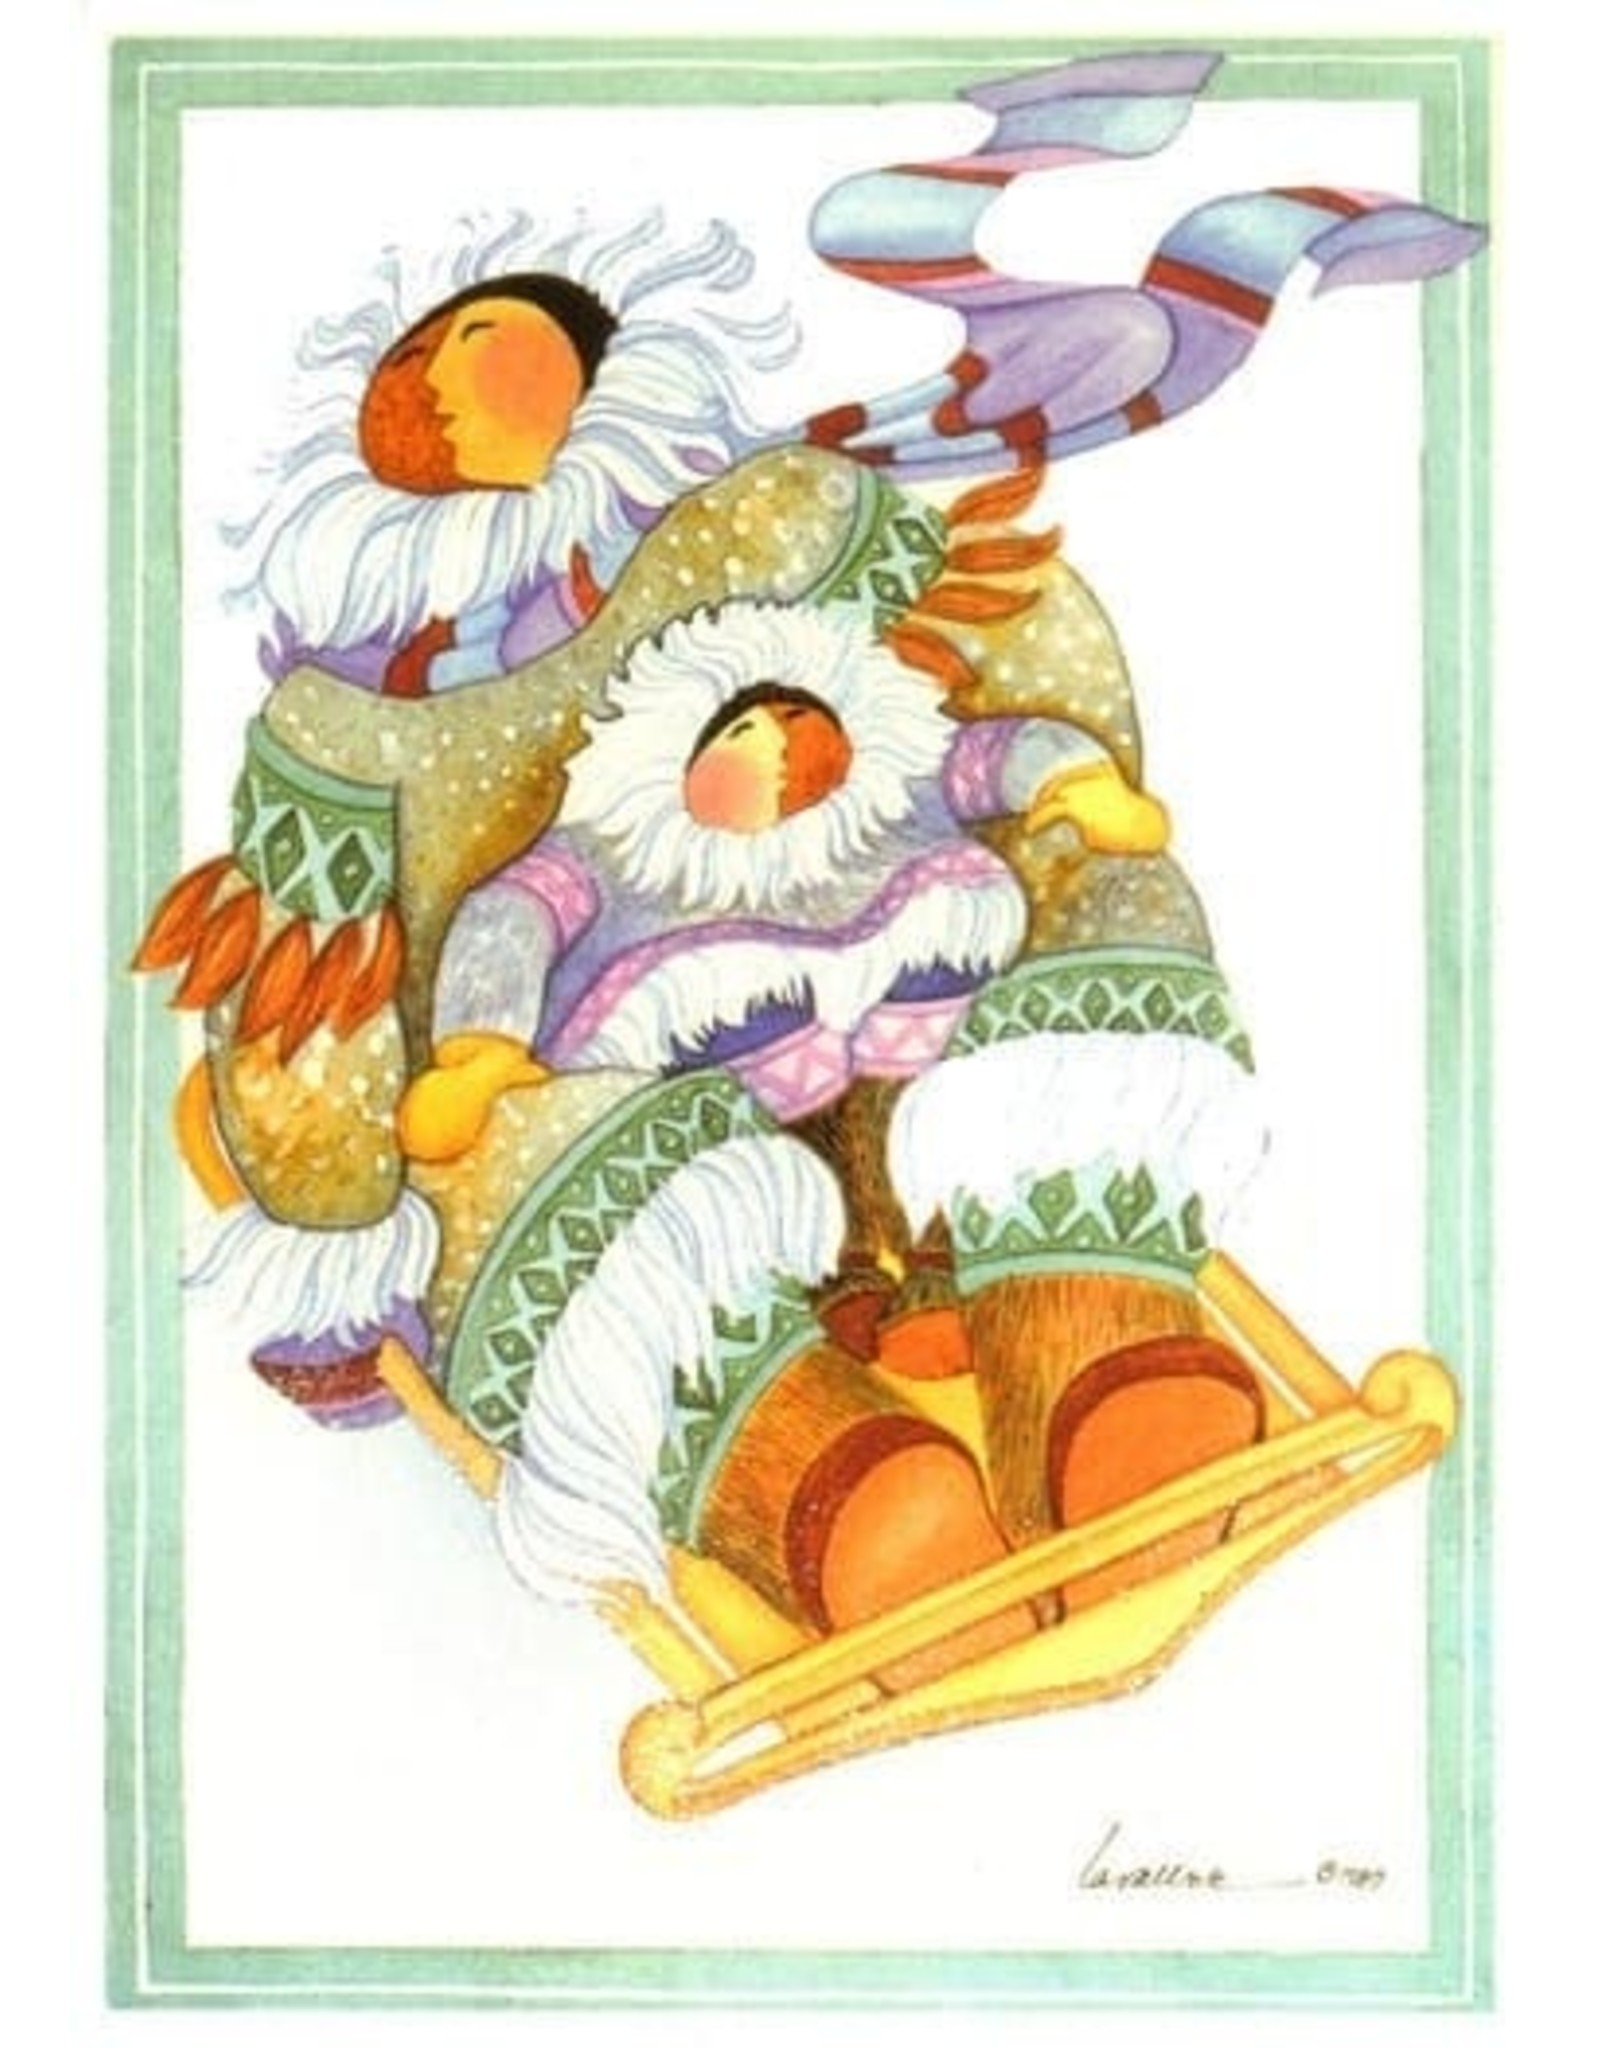 Barbara Lavallee Sledding (art card) | Barbara Lavallee